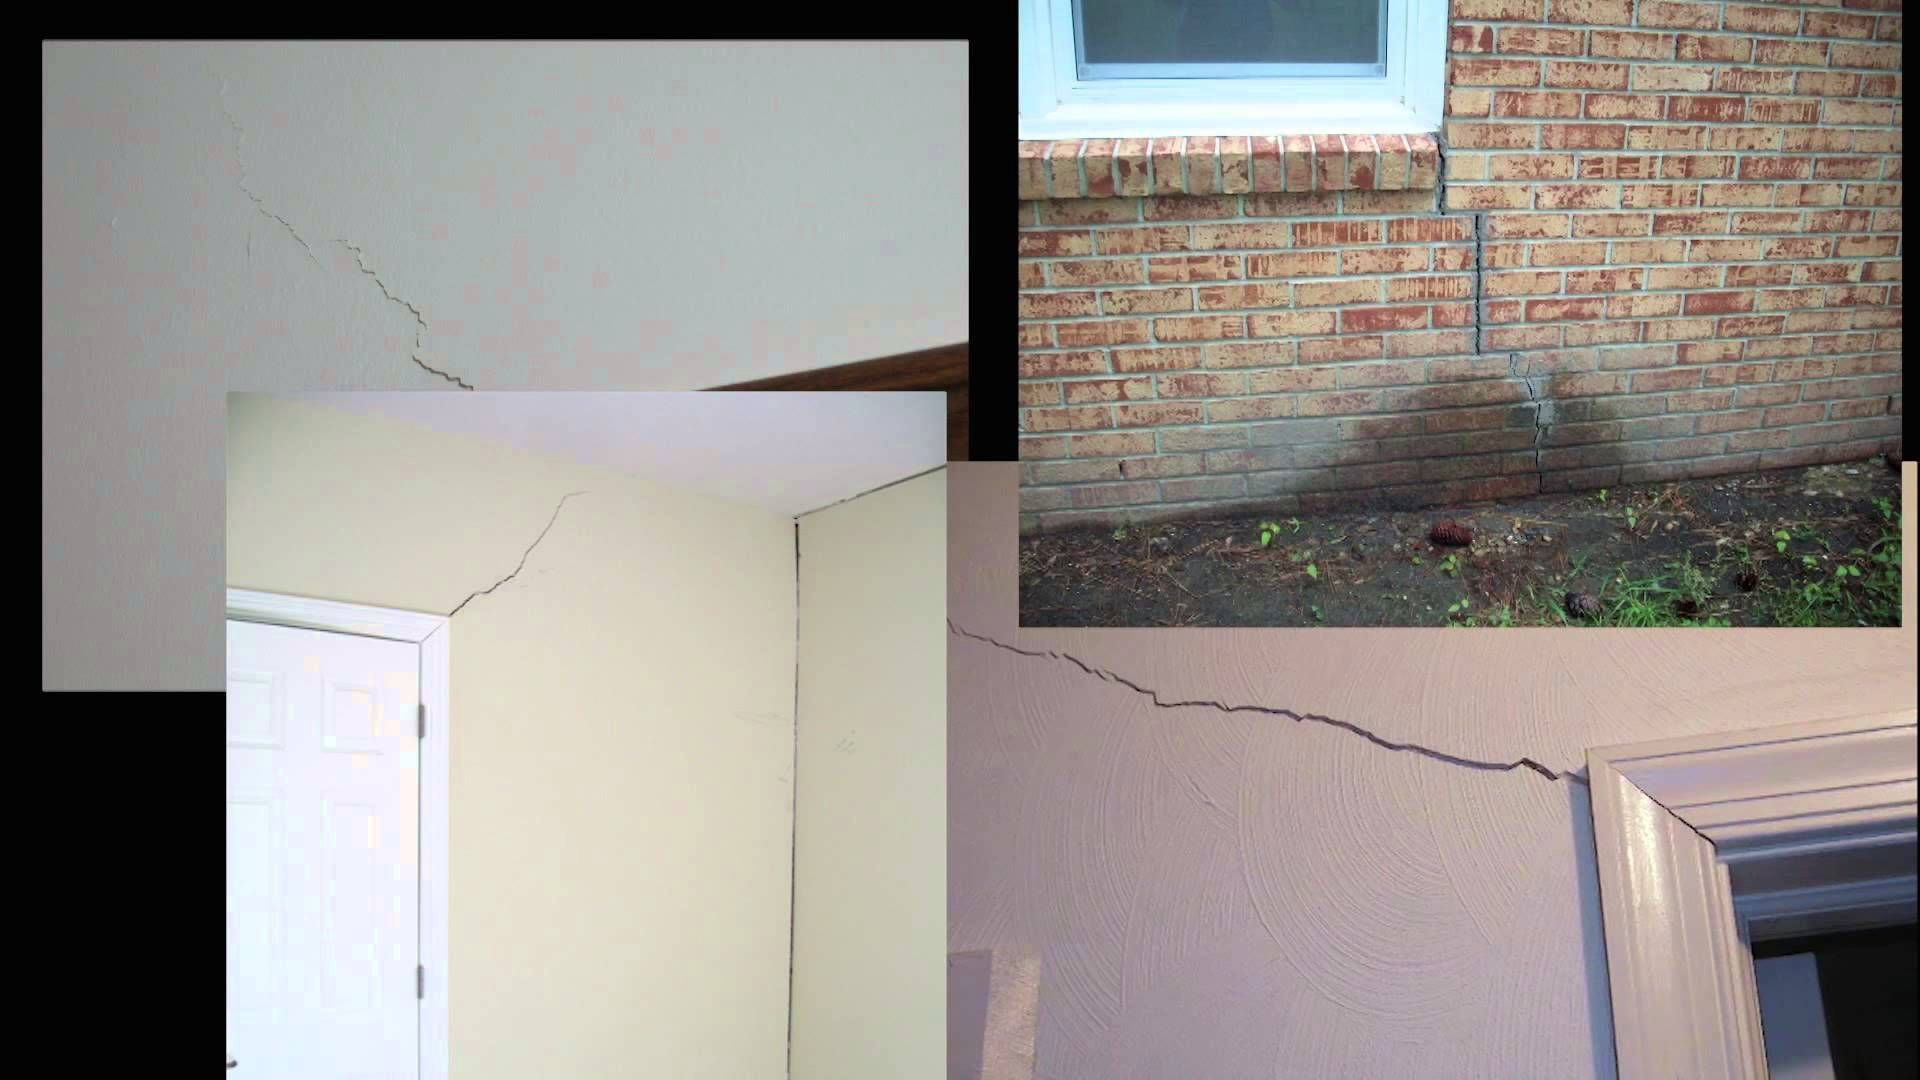 Foundation Cracks and Signs of Structural Failure Ask